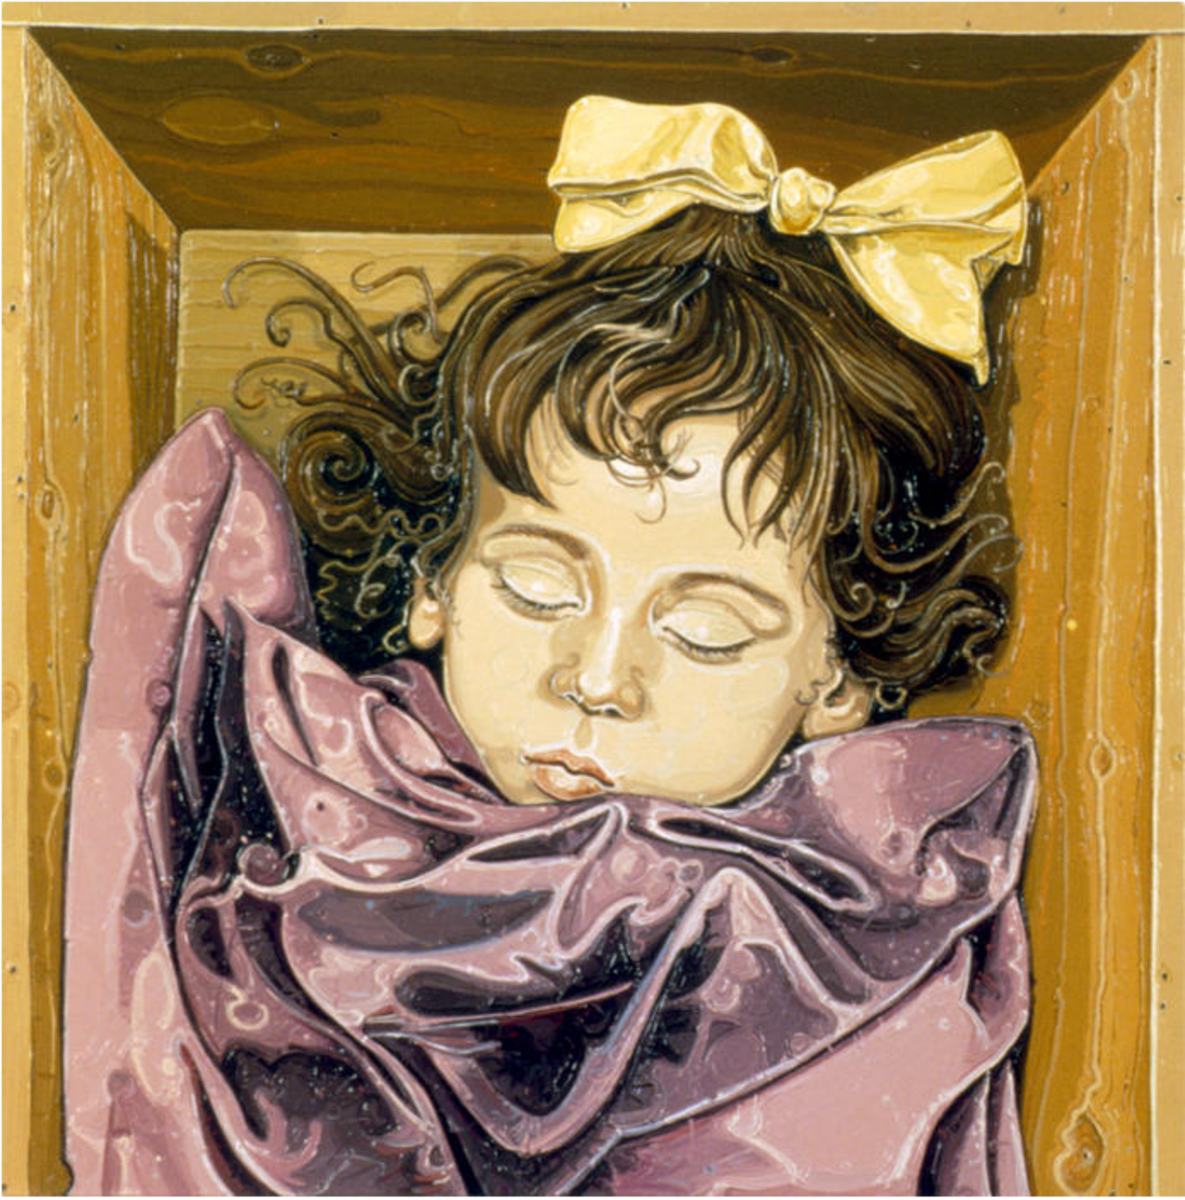 An Oil Painting of Rosalia by Julie Roberts from the Glasgow School of Art.